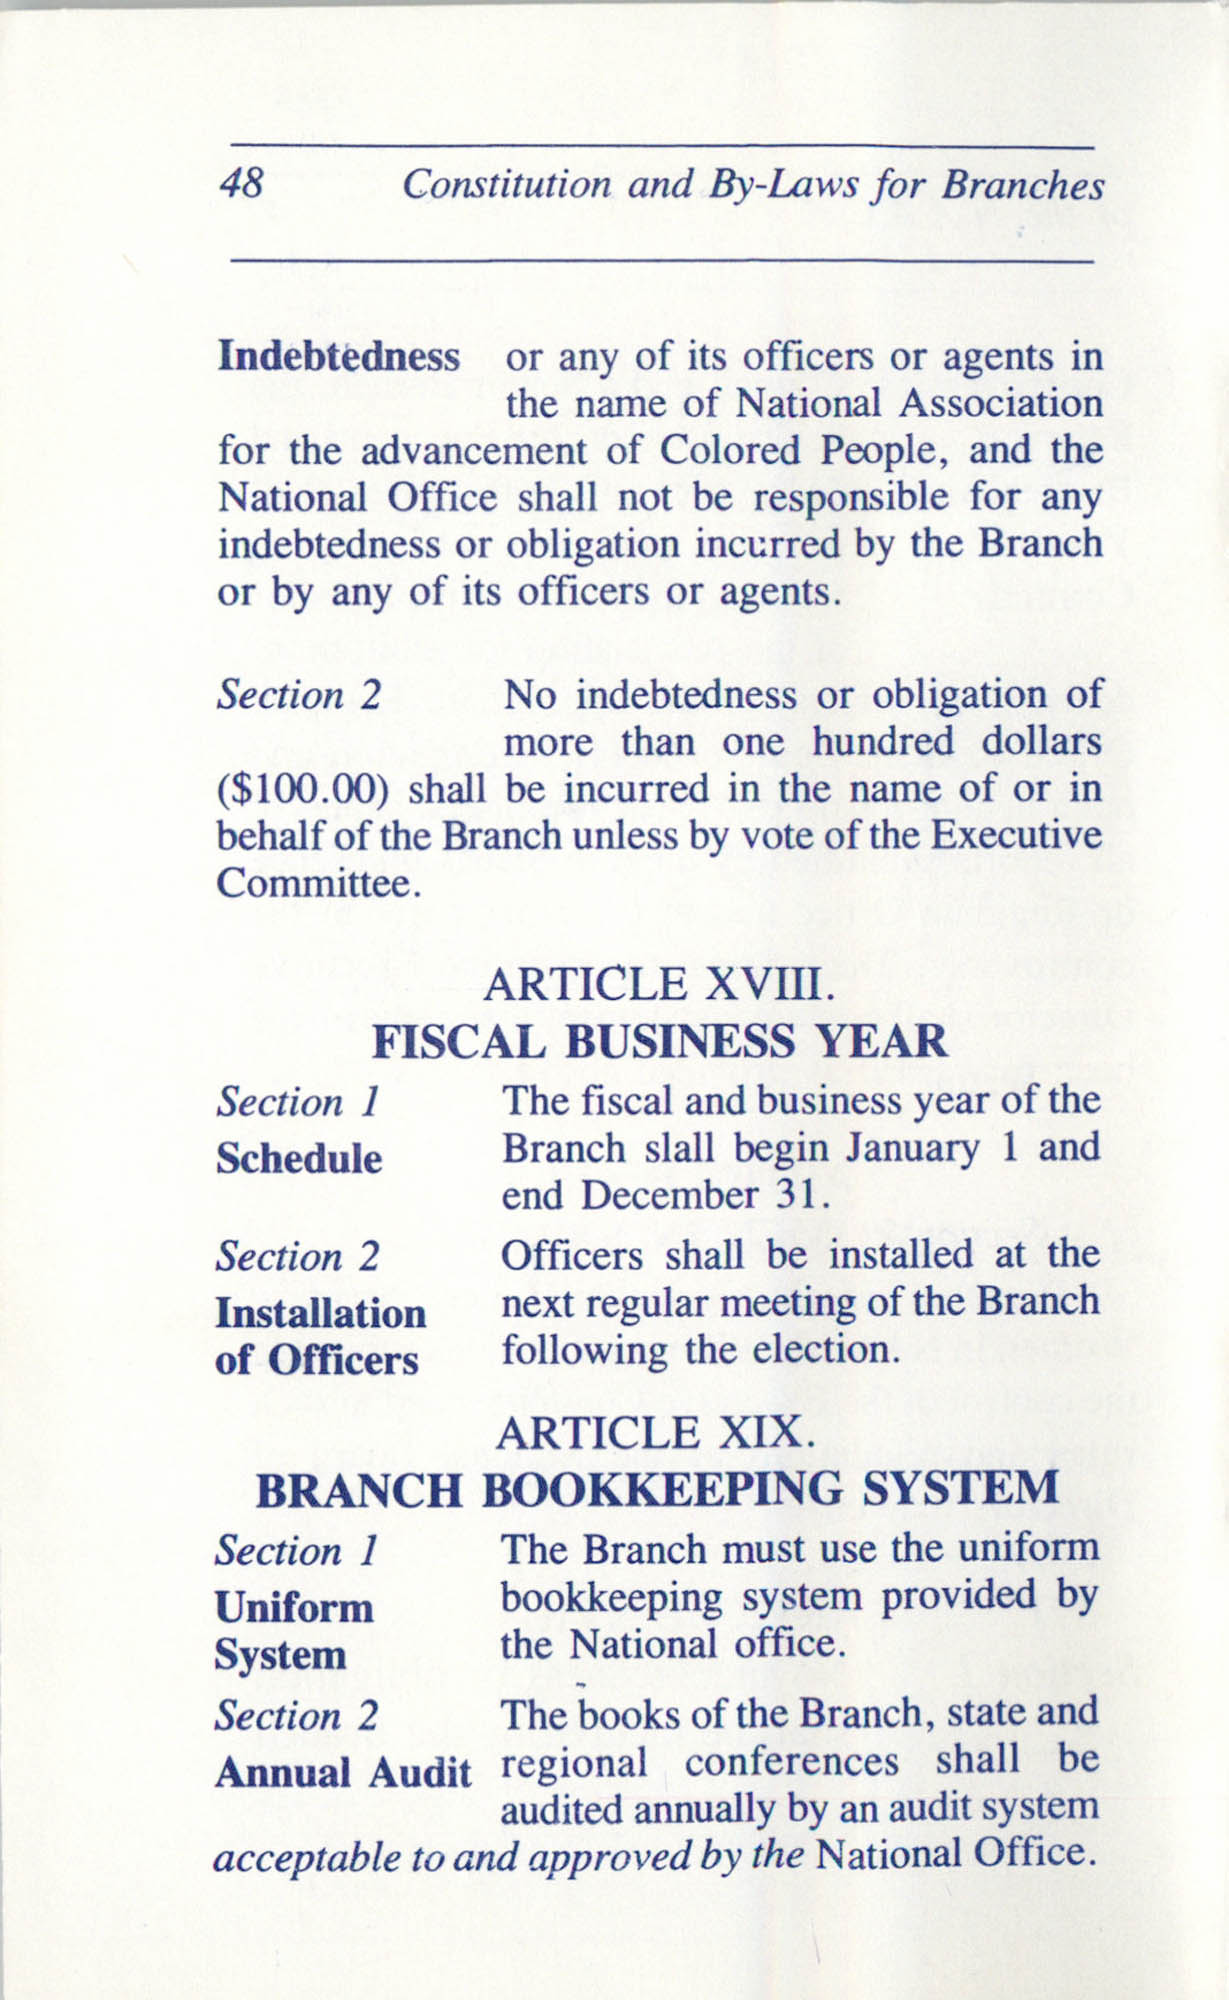 Constitution and By-Laws for Branches of the NAACP, June 1993, Page 48